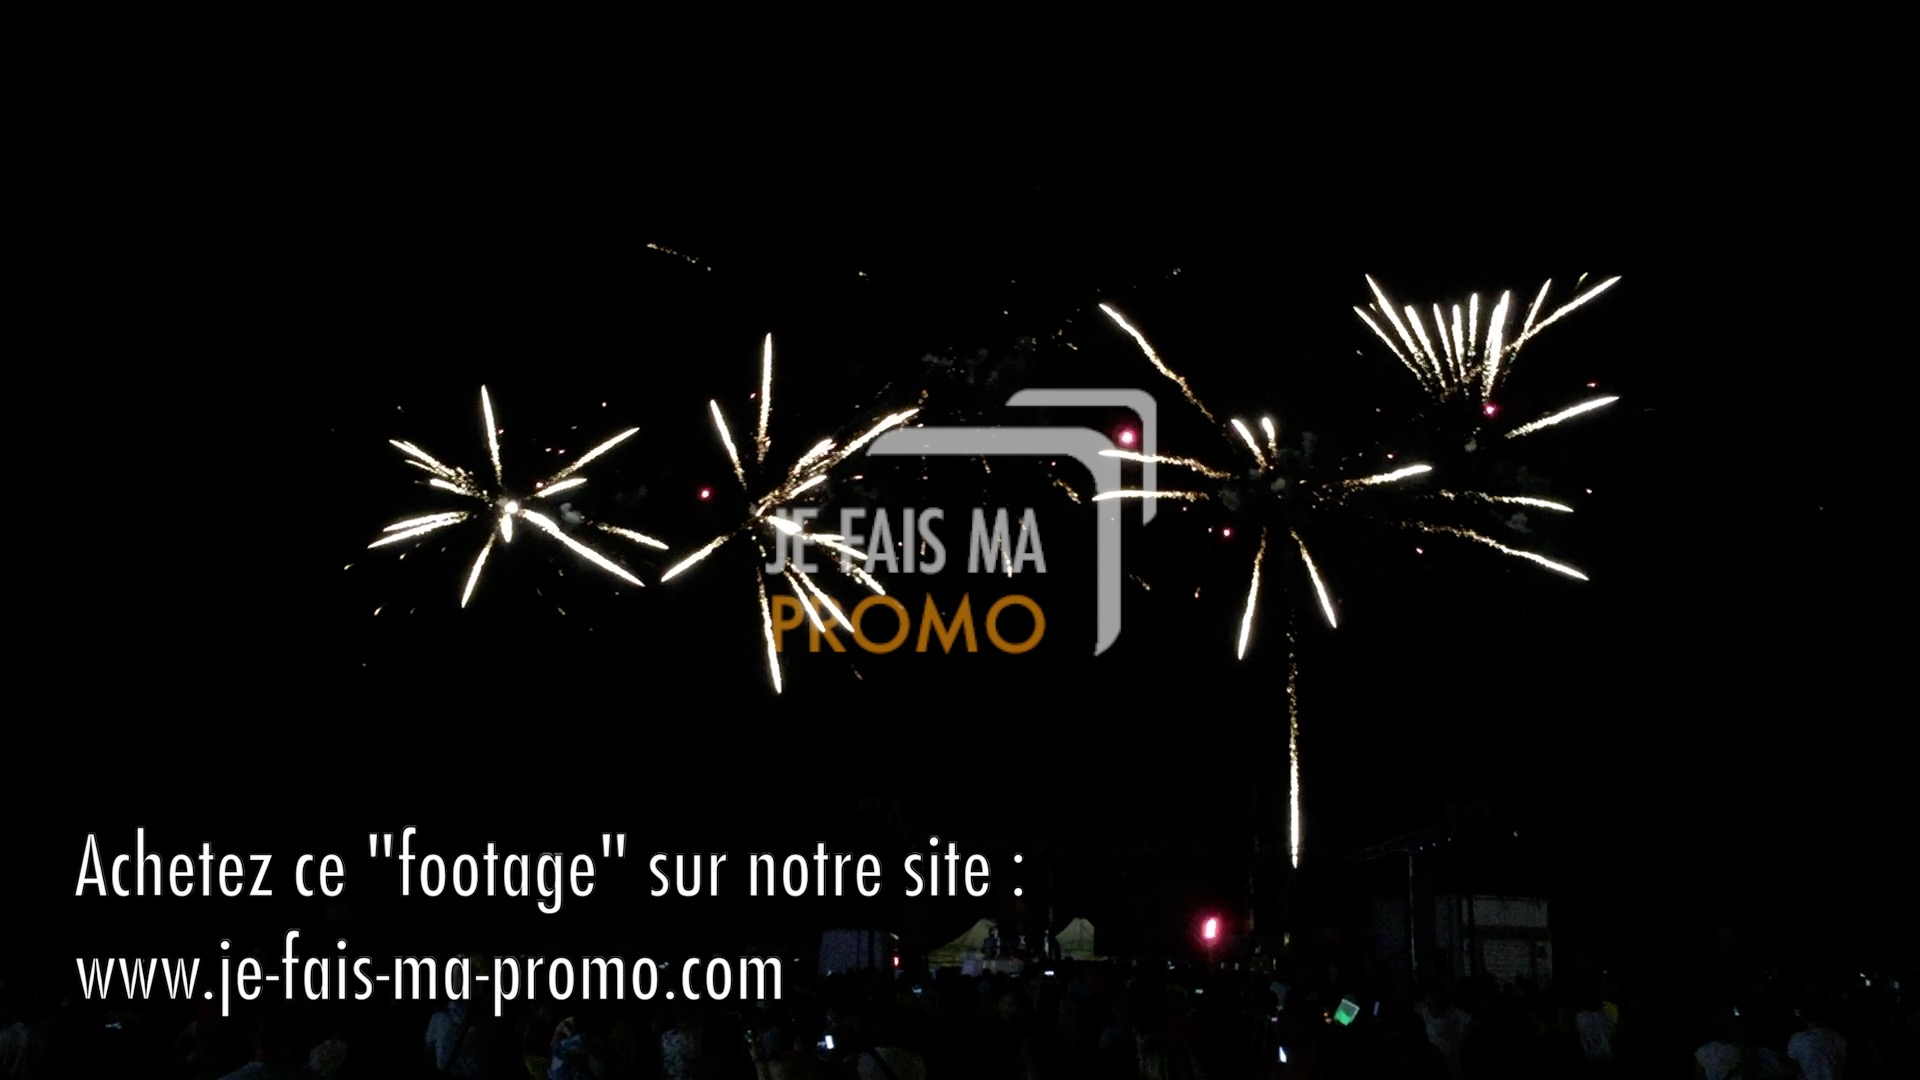 VIDEO : FOOTAGE - FEU D'ARTIFICE 1.m4v